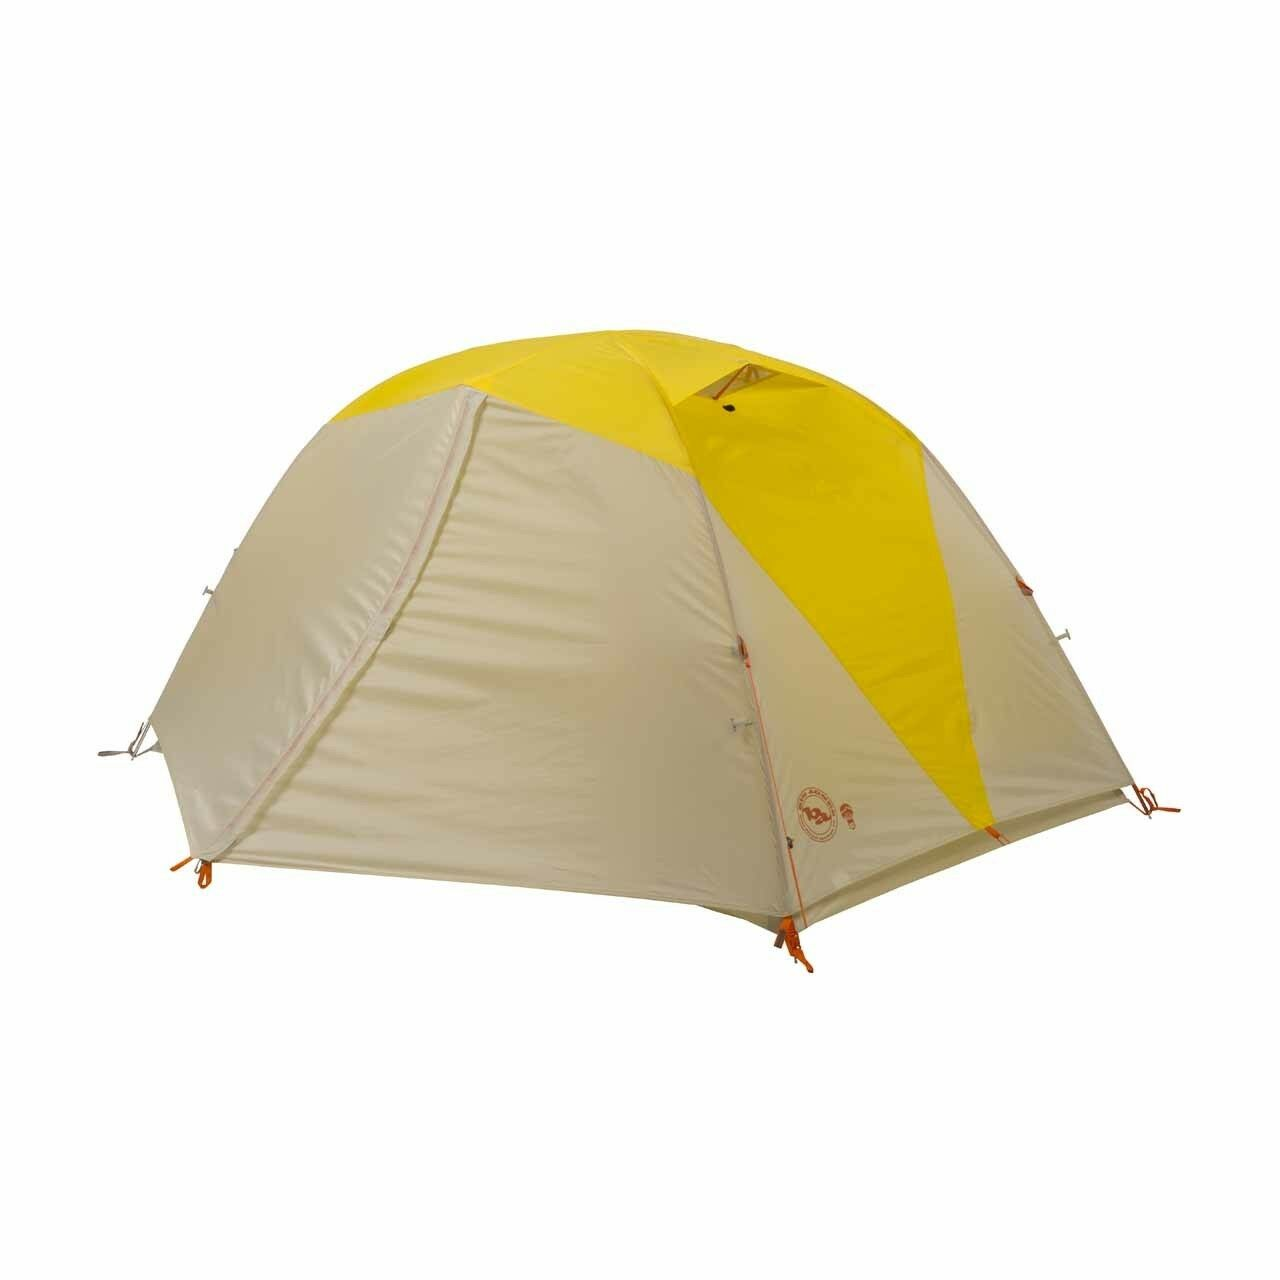 Big Agnes Tumble 2 mtnGLO Tent - New